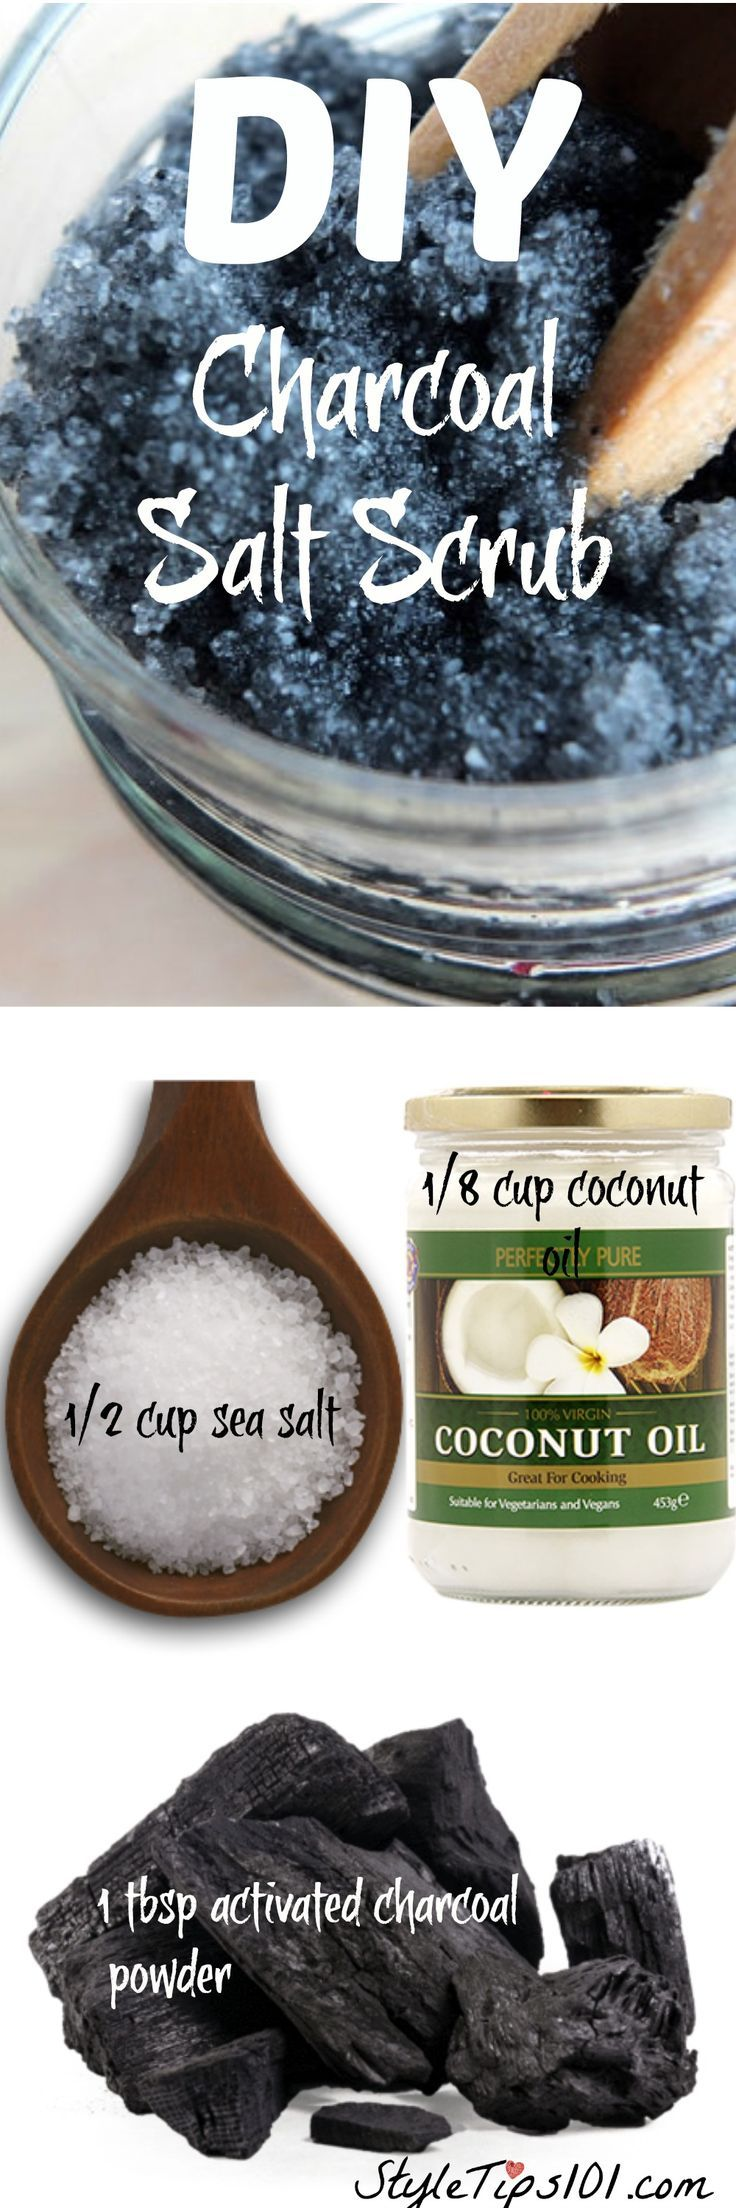 best diy beauty images on pinterest soaps beleza and diy beauty